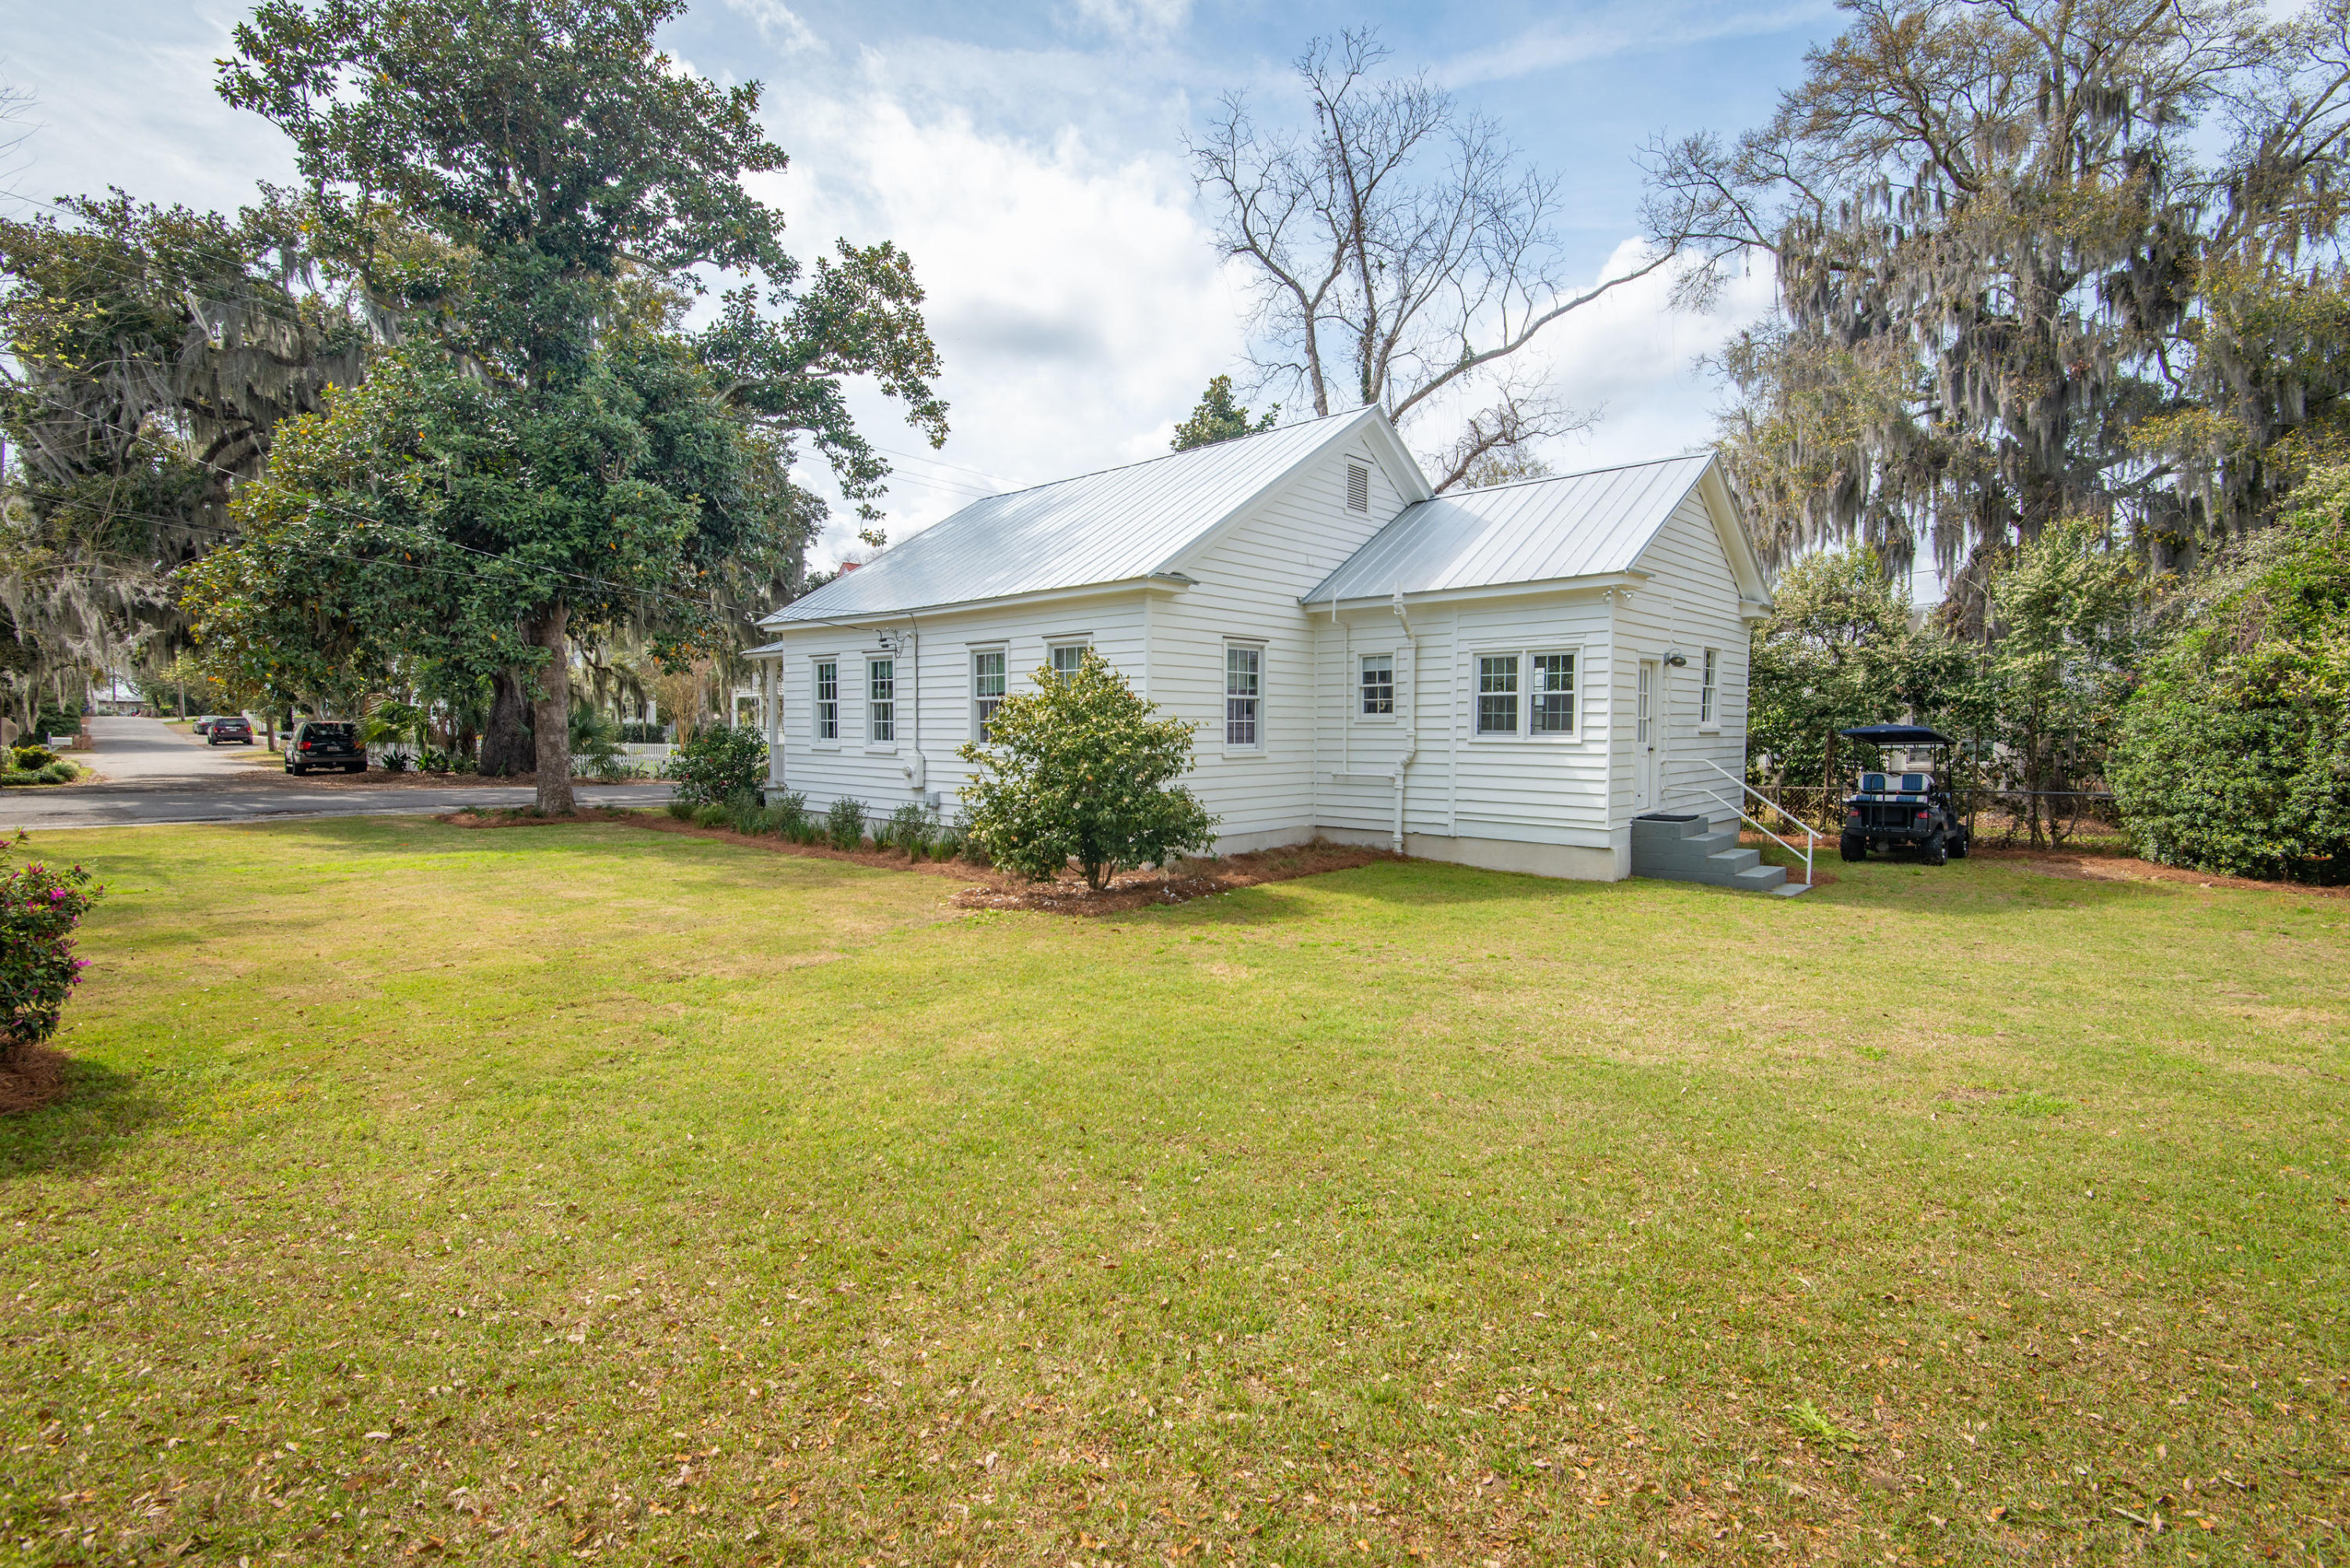 Old Village Homes For Sale - 110 Bennett, Mount Pleasant, SC - 16